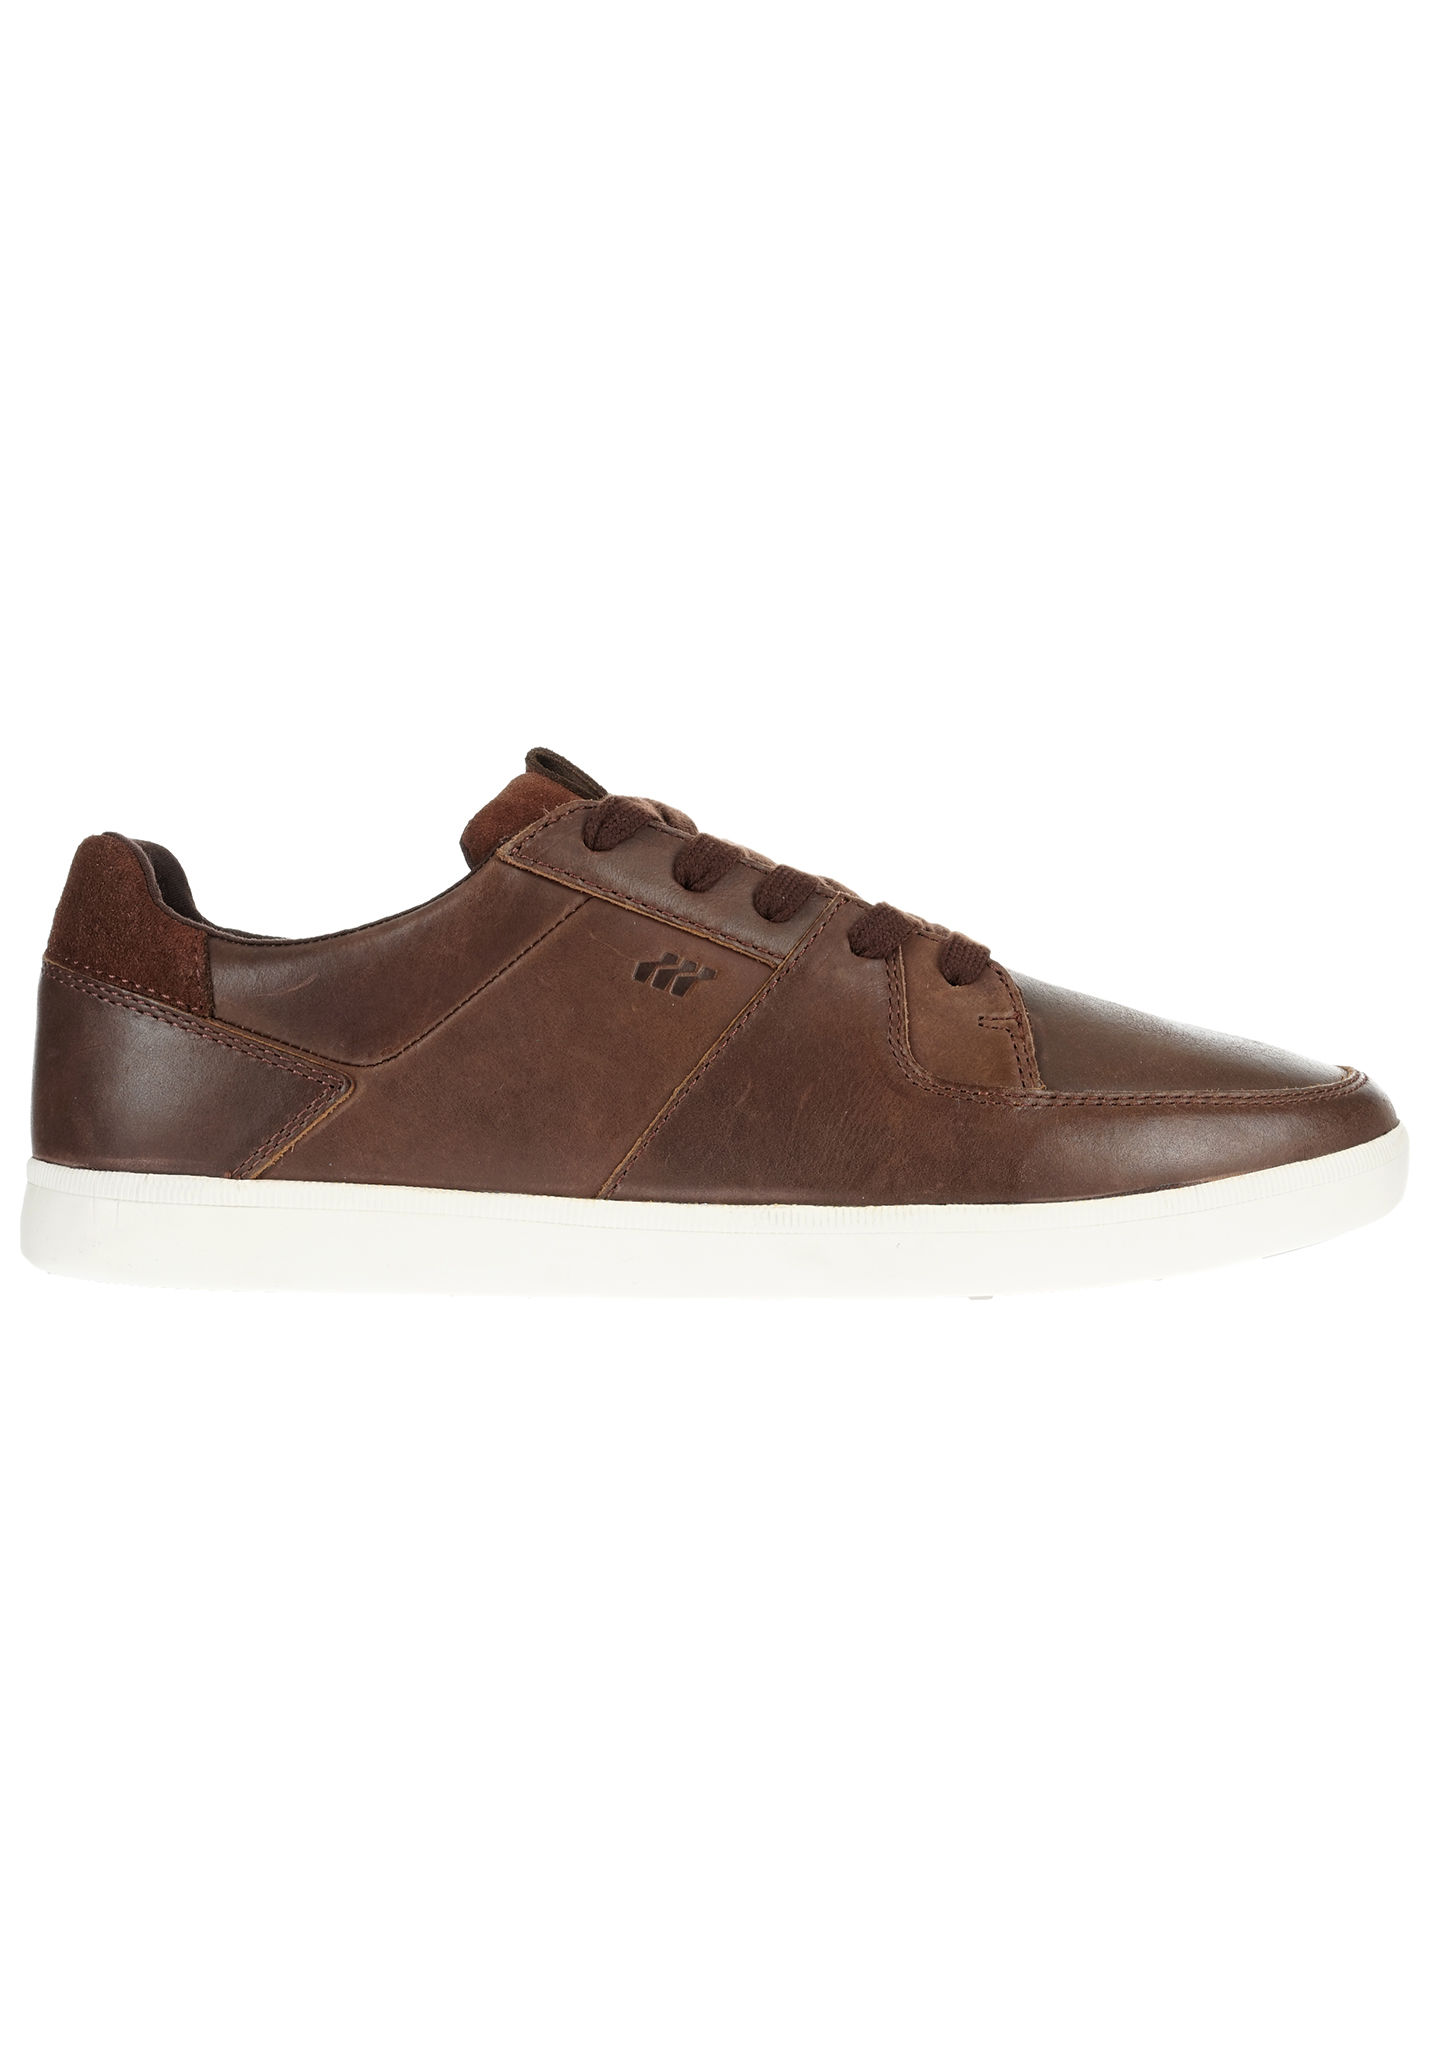 BOXFRESH CLadd Icon Vcht Lthr Sneakers for Men Brown